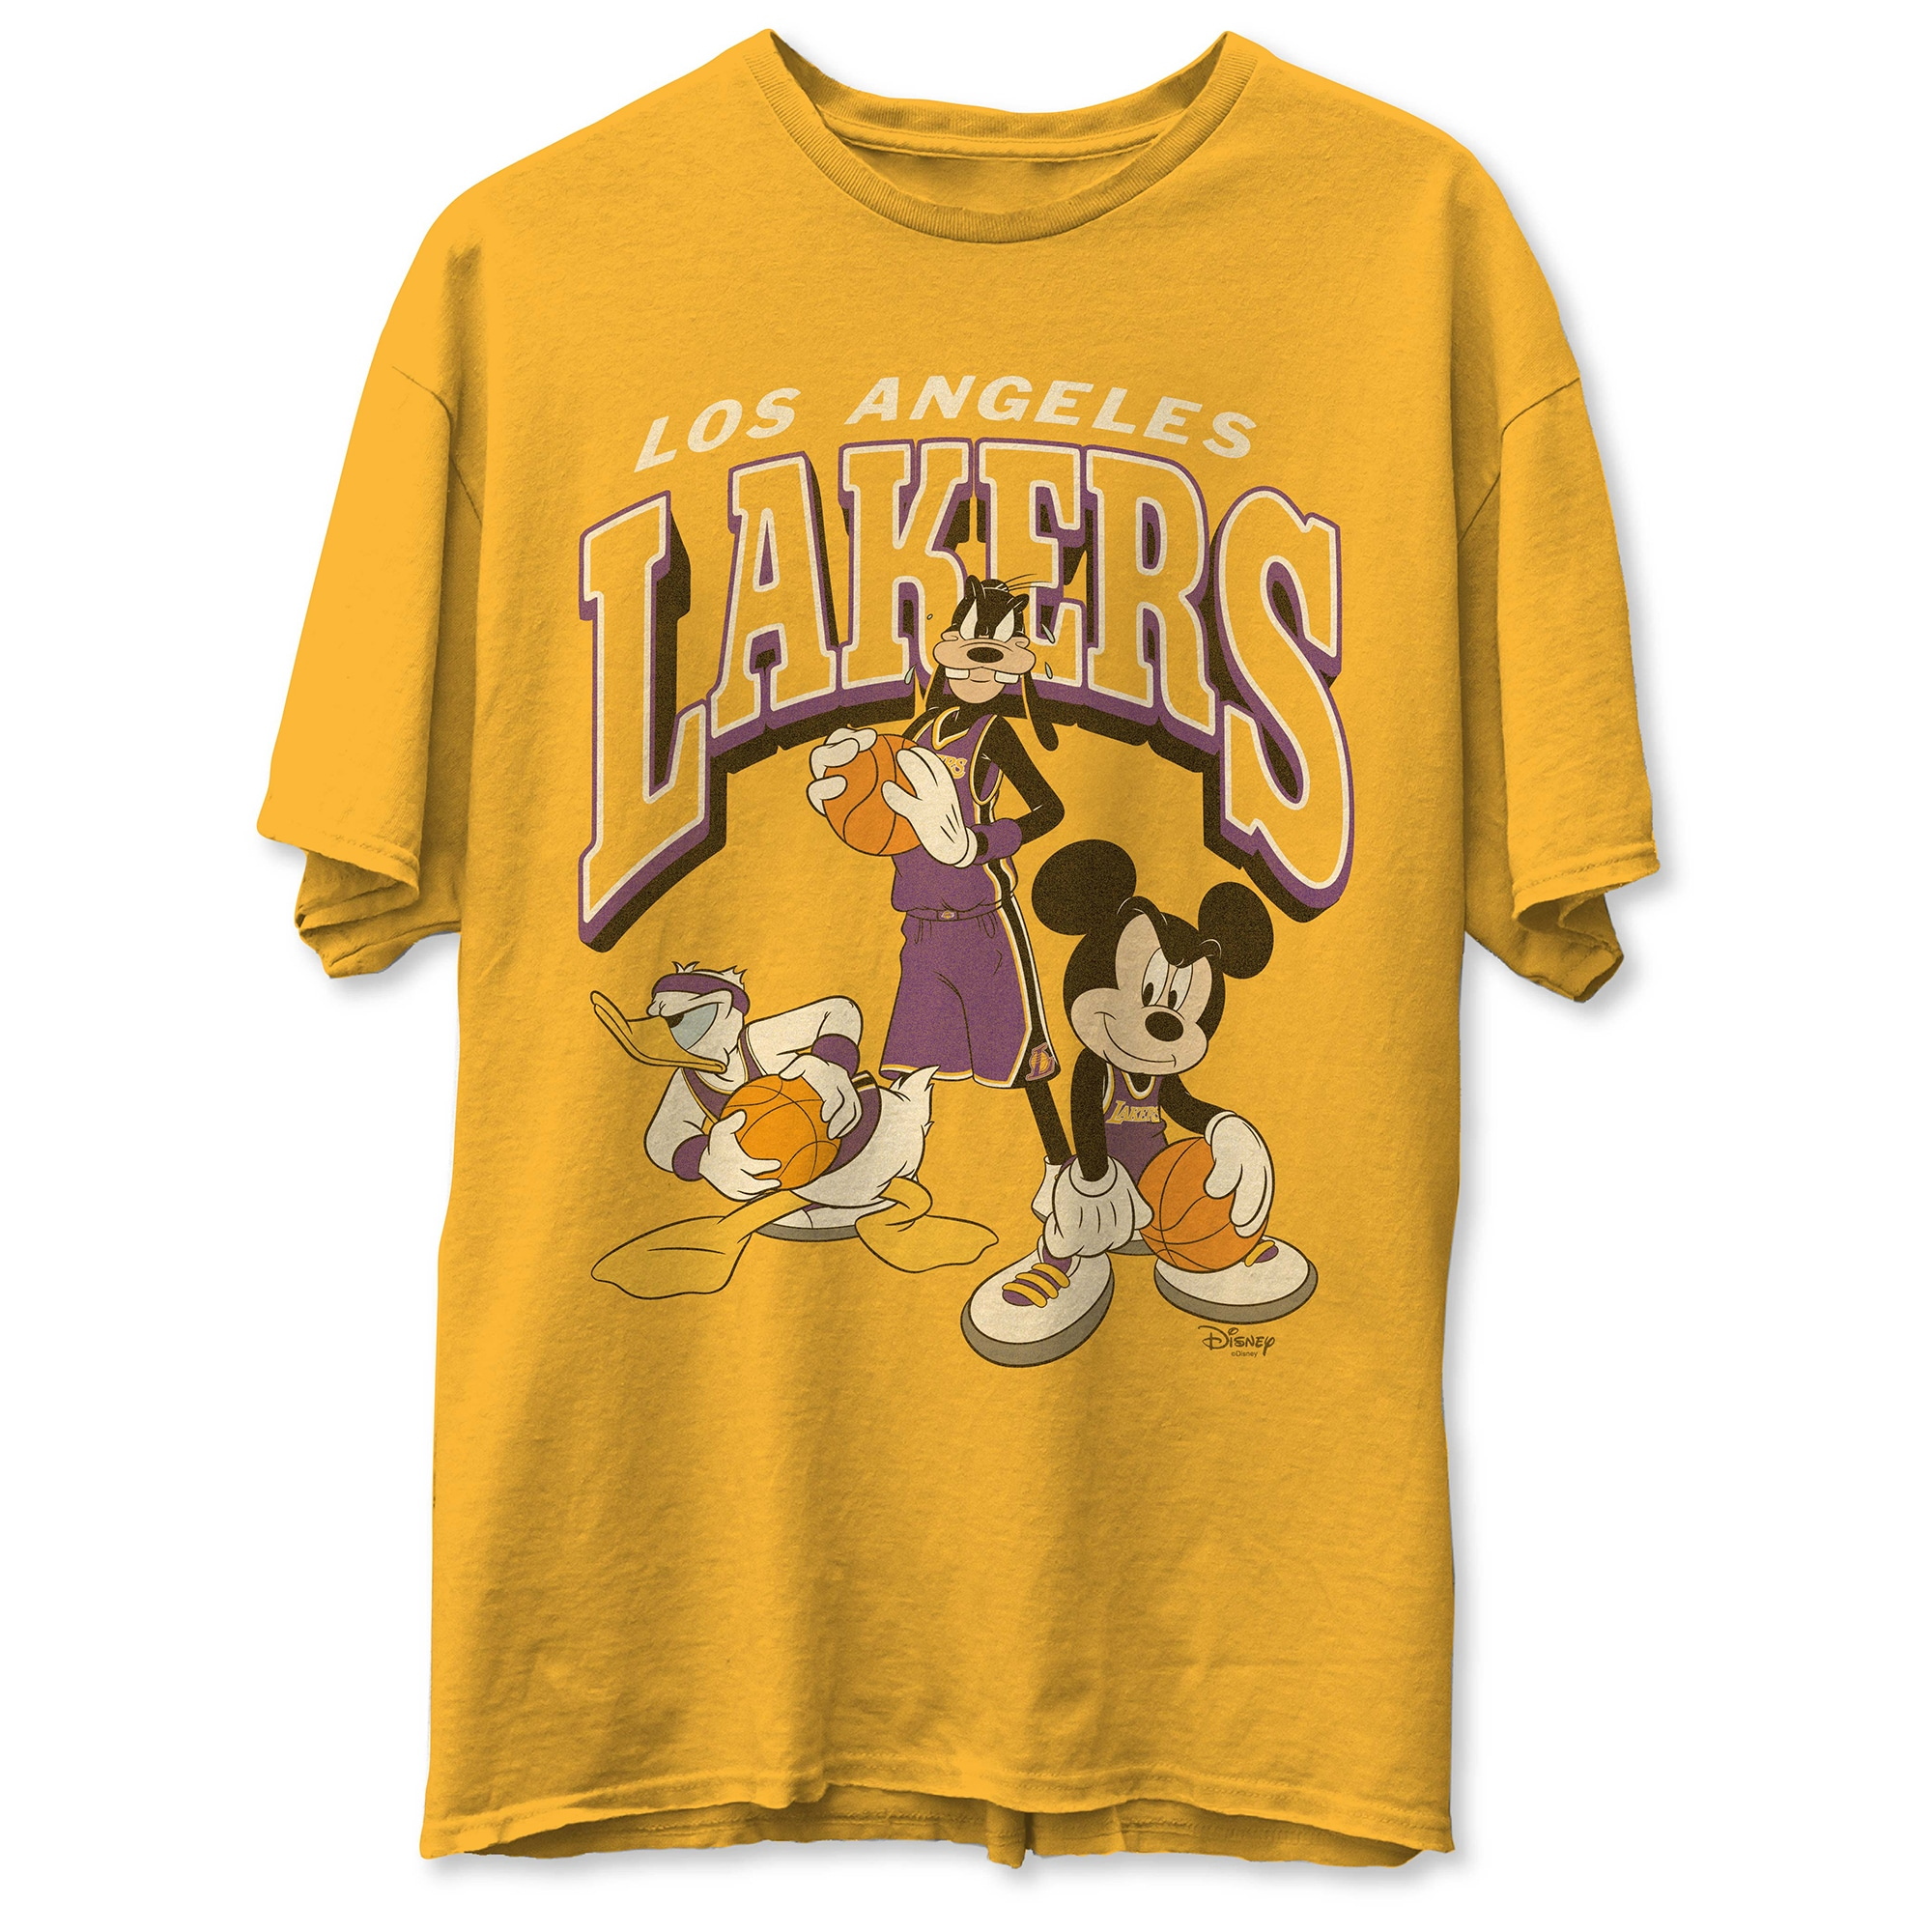 Los Angeles Lakers Junk Food Disney Mickey Squad T-Shirt - Gold